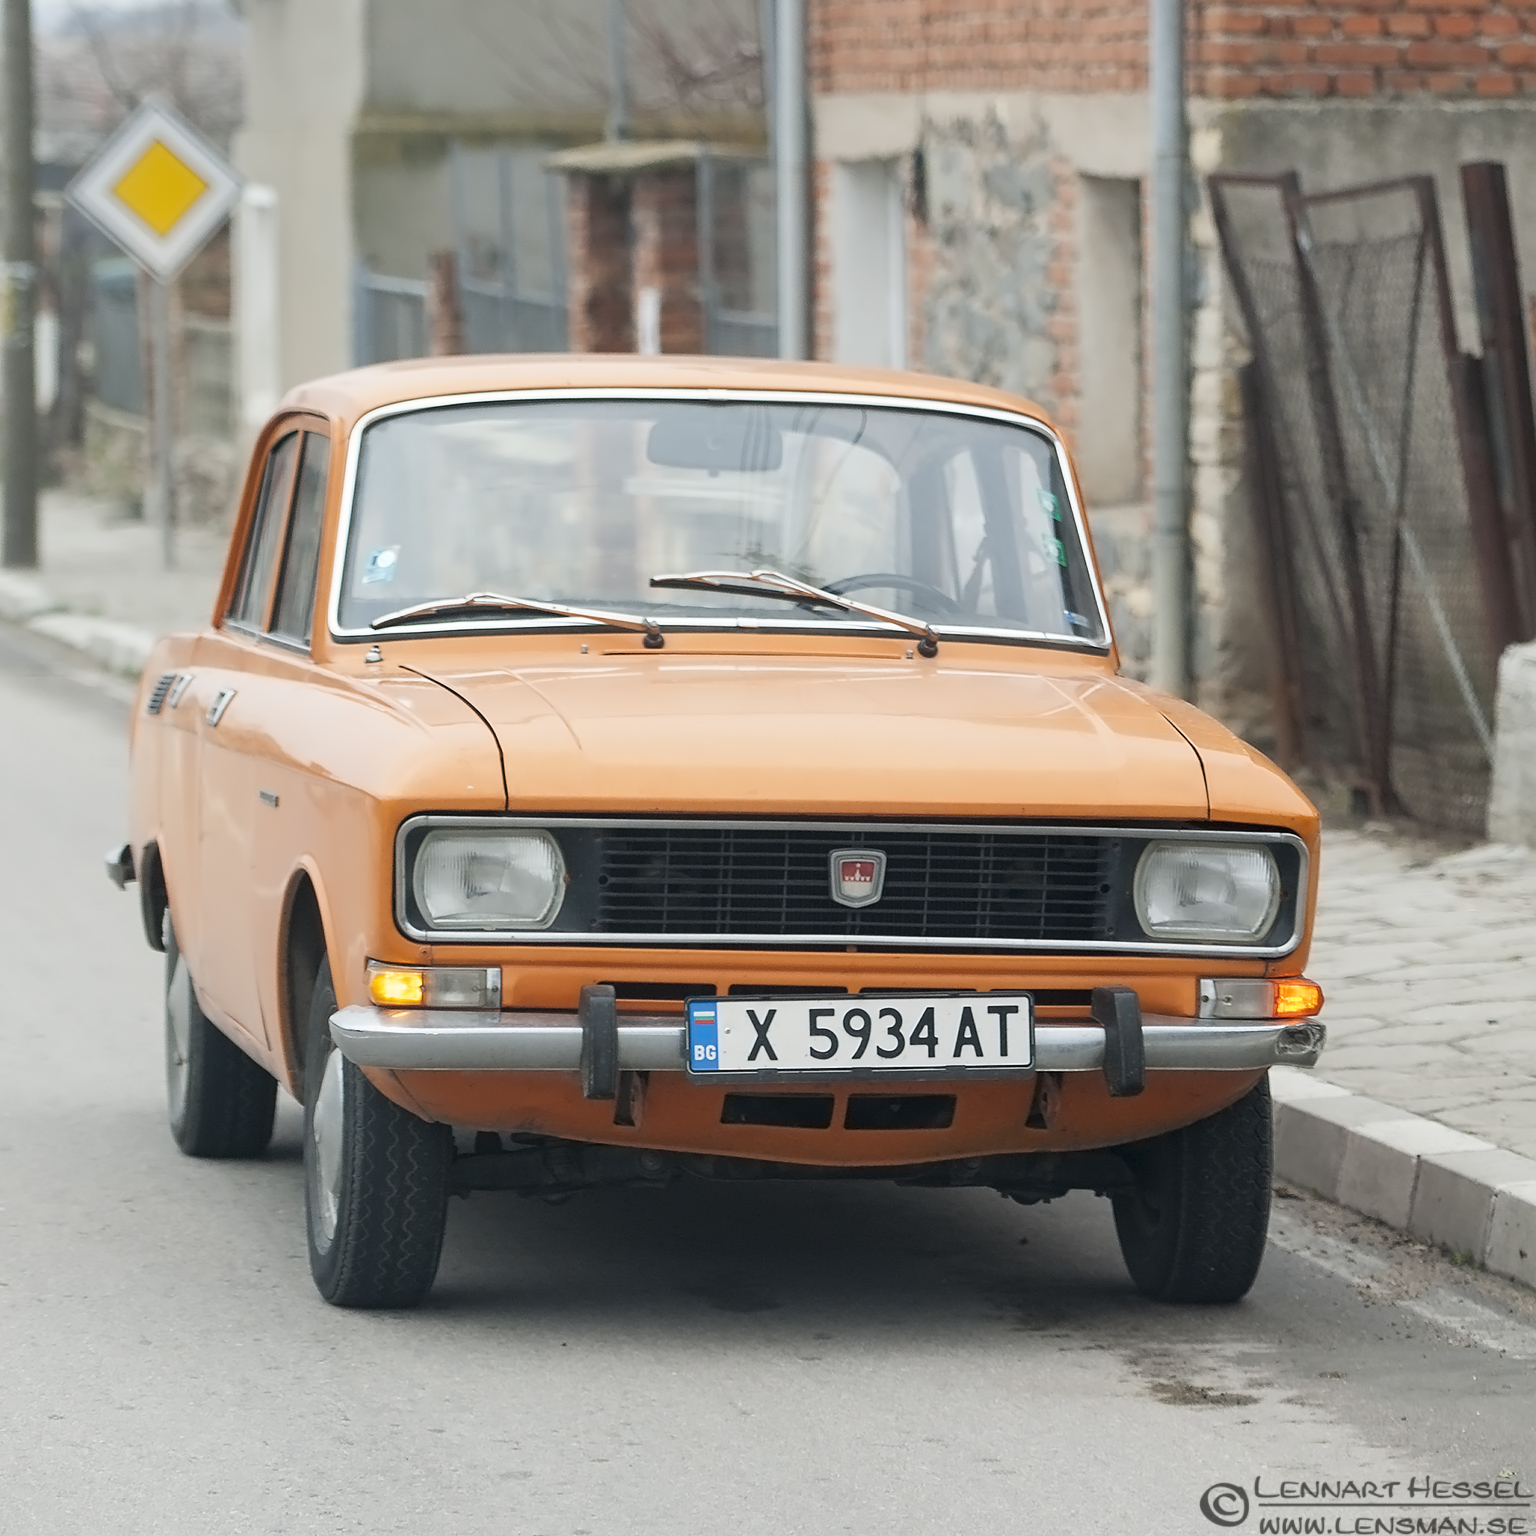 Orange car Bulgaria